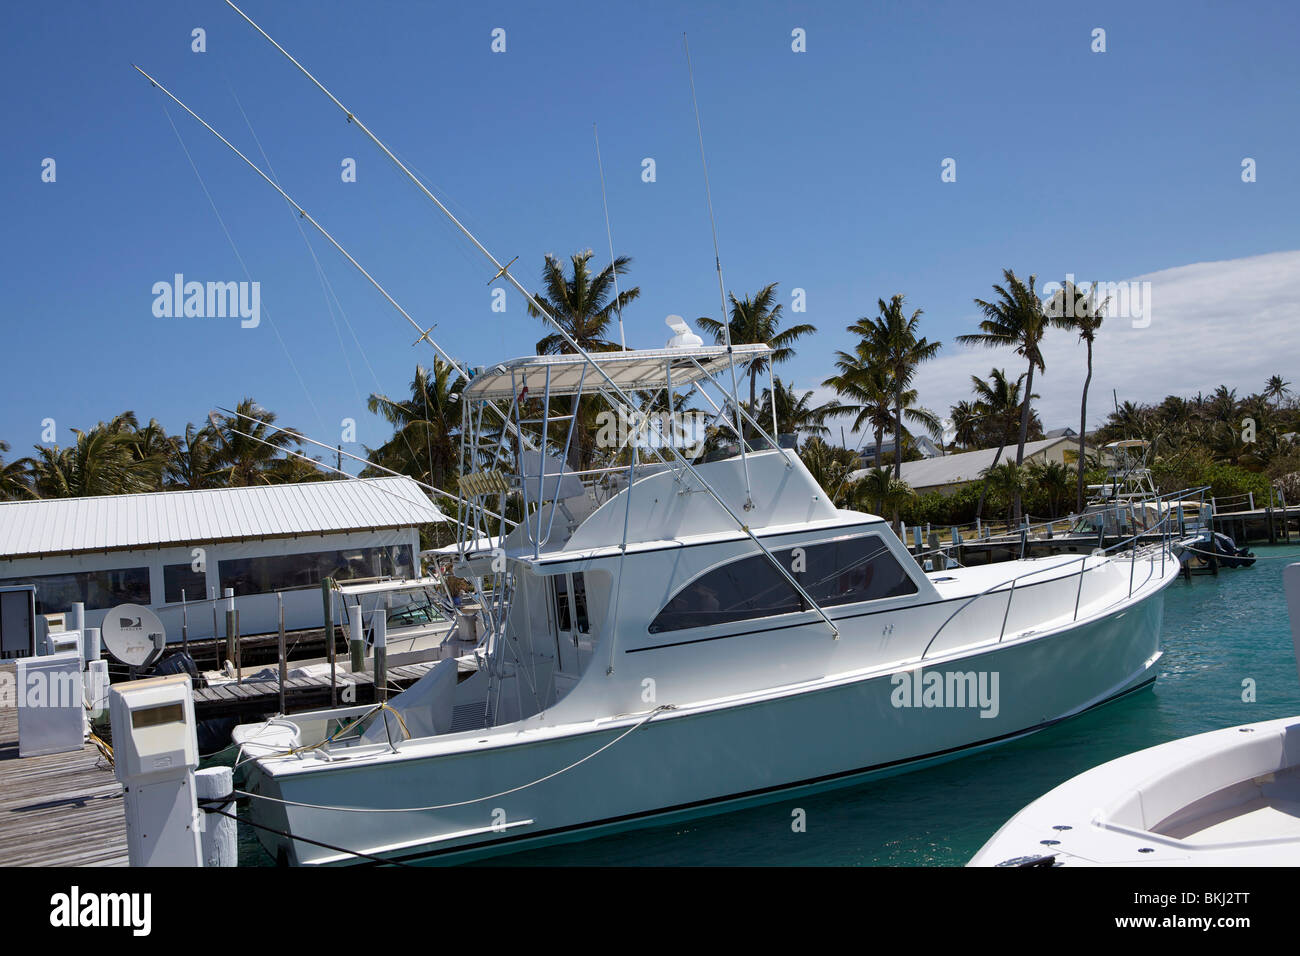 A motor cruiser tied up in a slip at the marina in Man O War Cay. - Stock Image